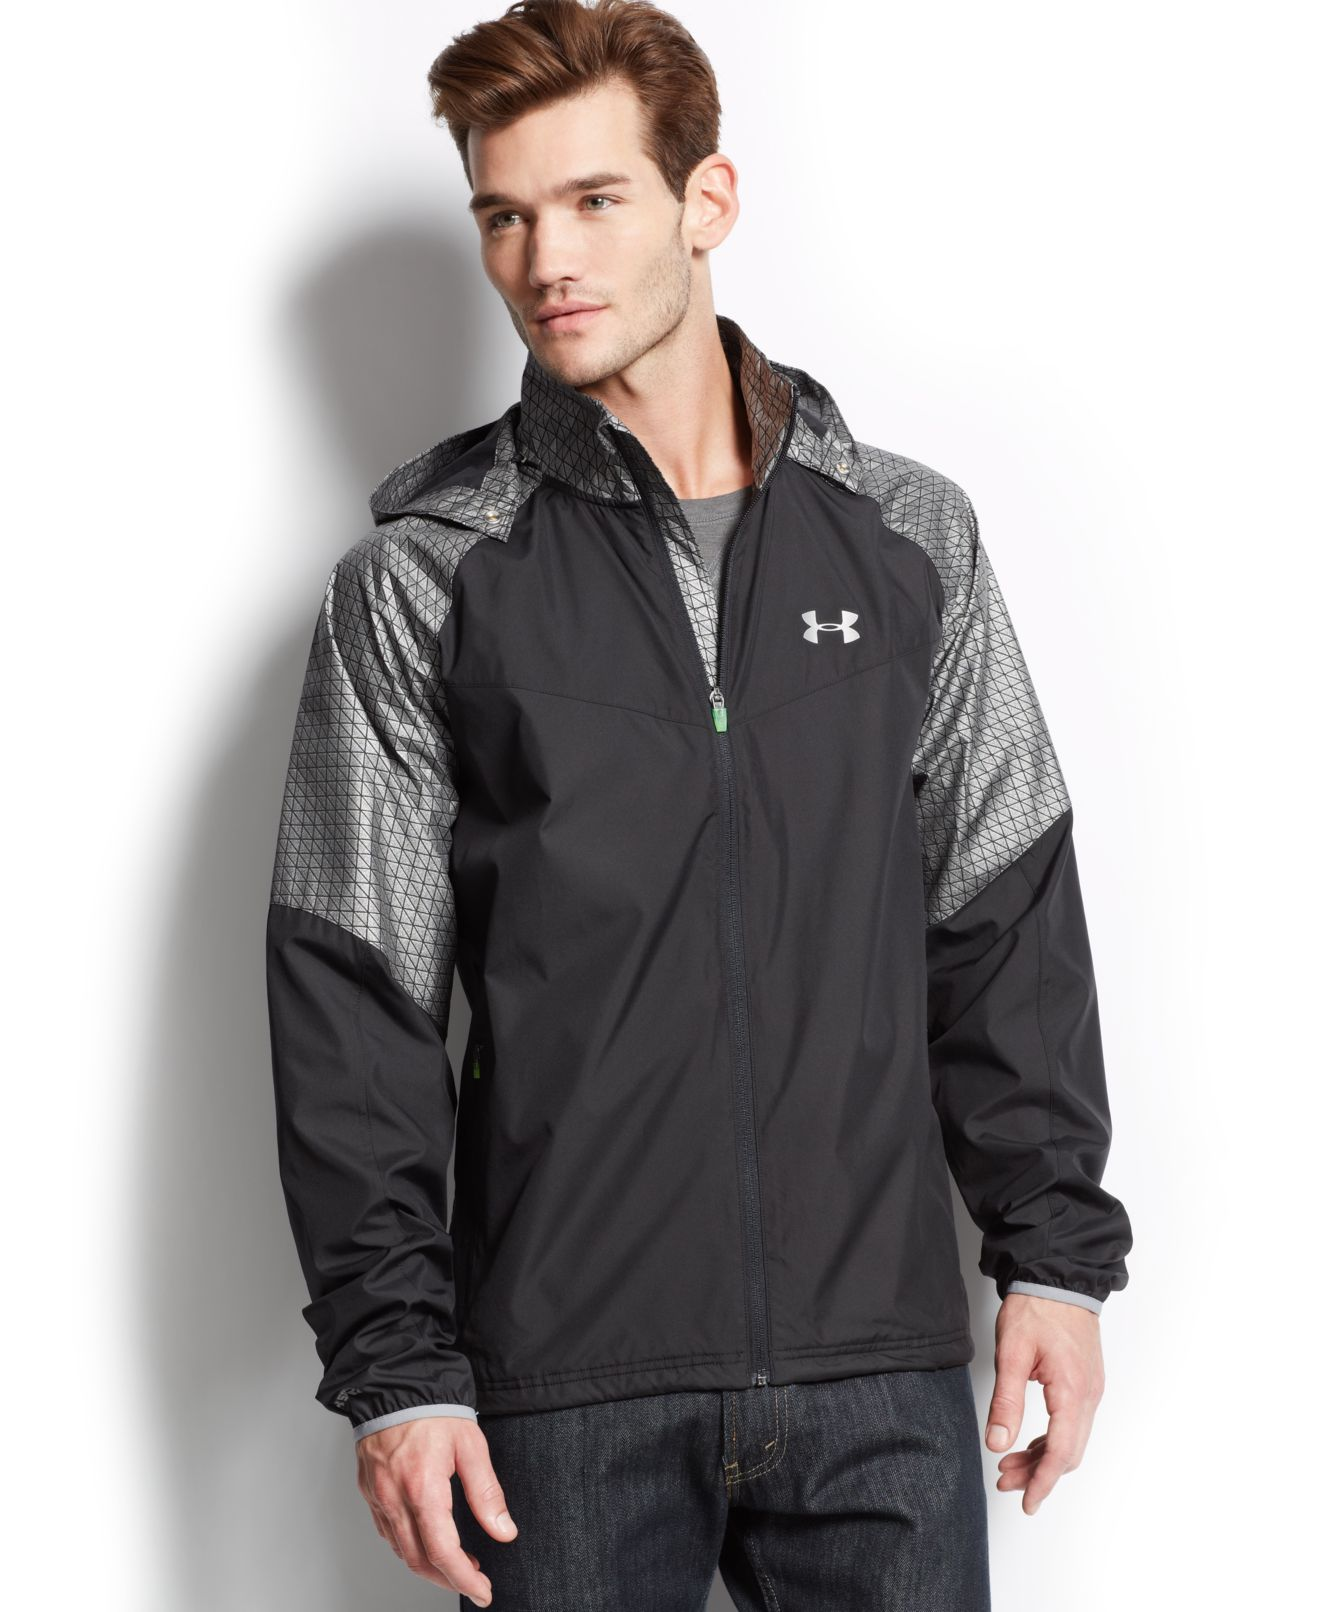 Under Armour Storm Golf Jacket Armour Storm Anchor Jacket